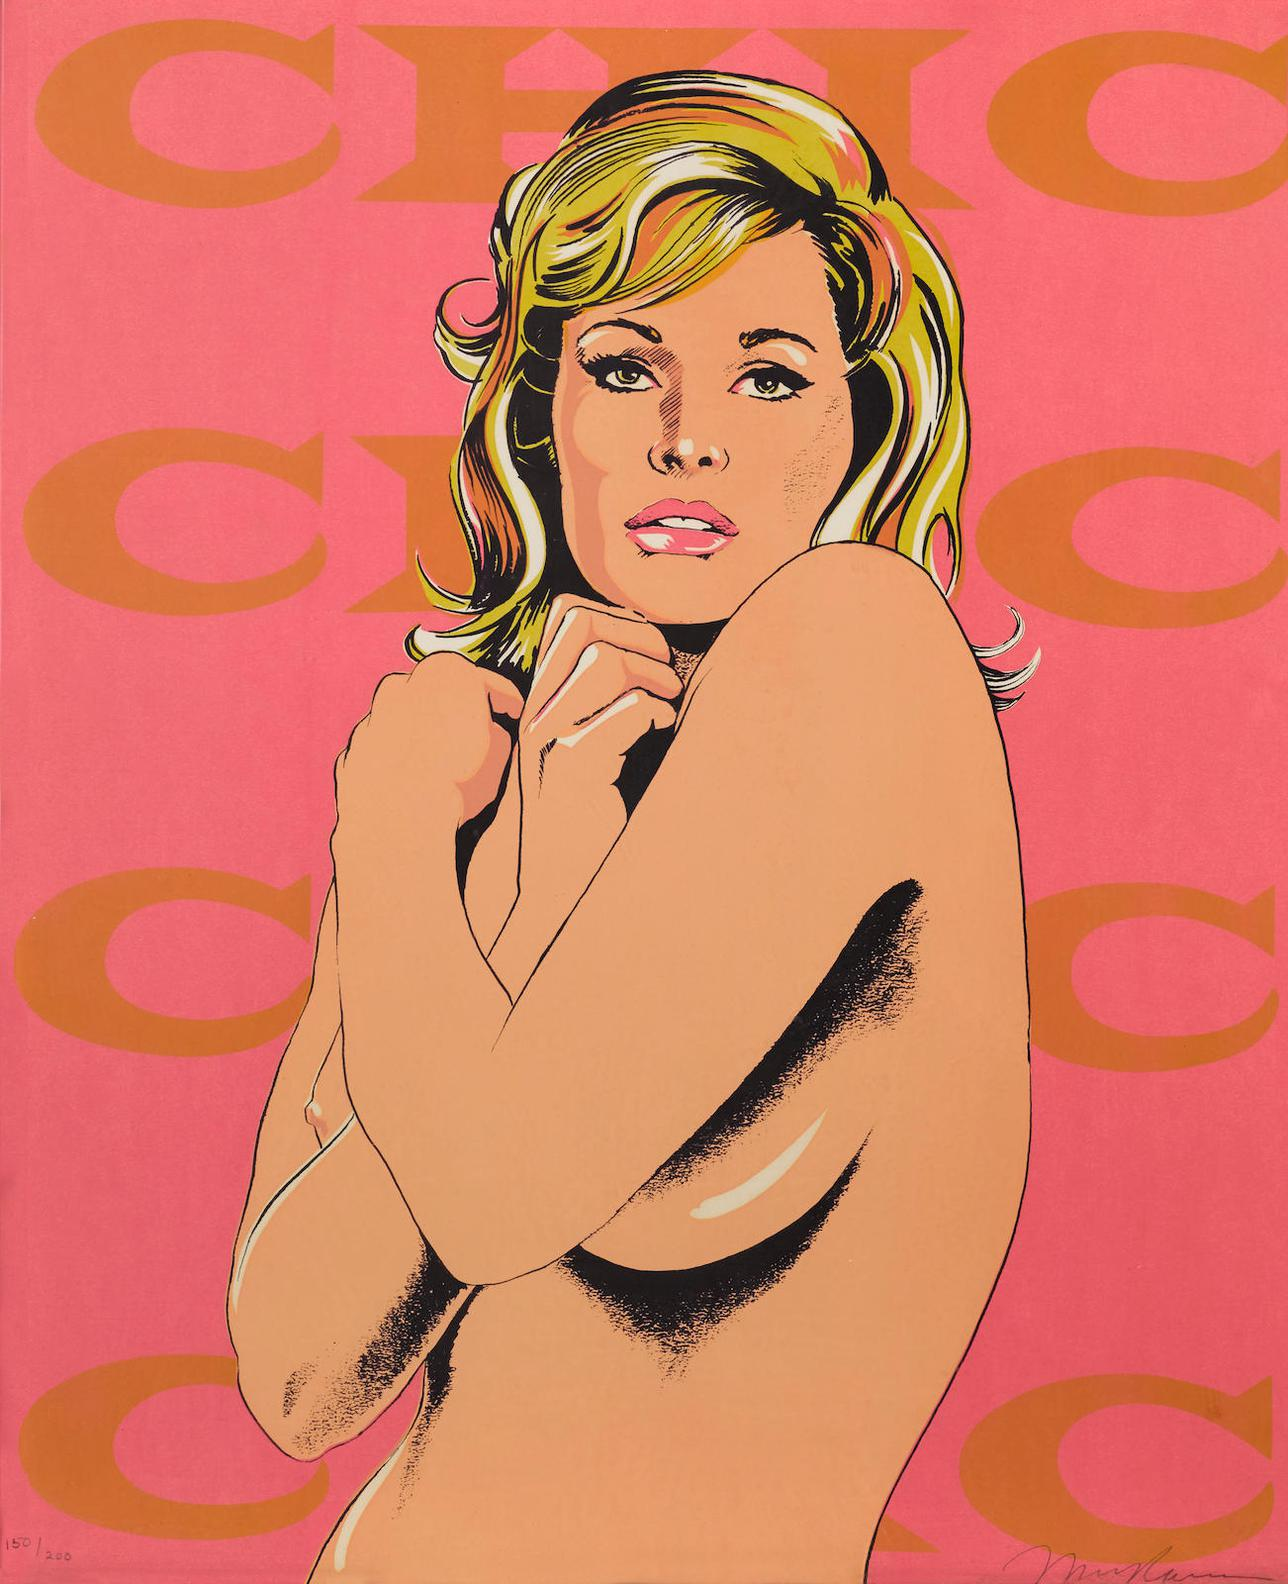 Mel Ramos-Chic, From 11 Pop Artists, Volume II-1965